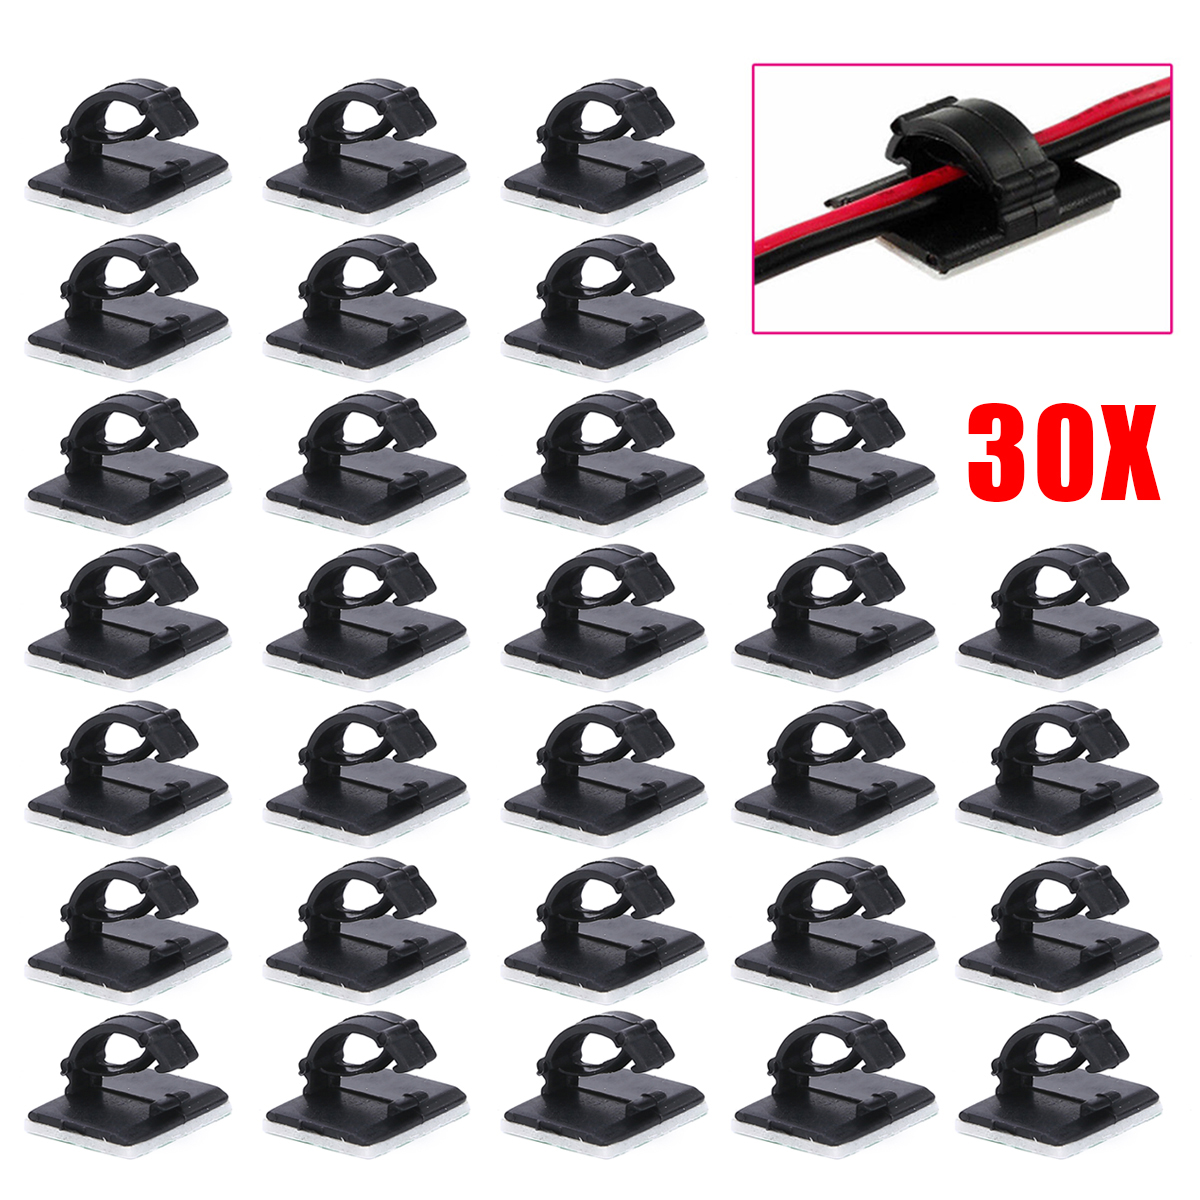 30pcs-self-adhesive-car-wire-clip-fixer-holder-cable-holder-rectangle-plastic-mount-clamp-network-office-cable